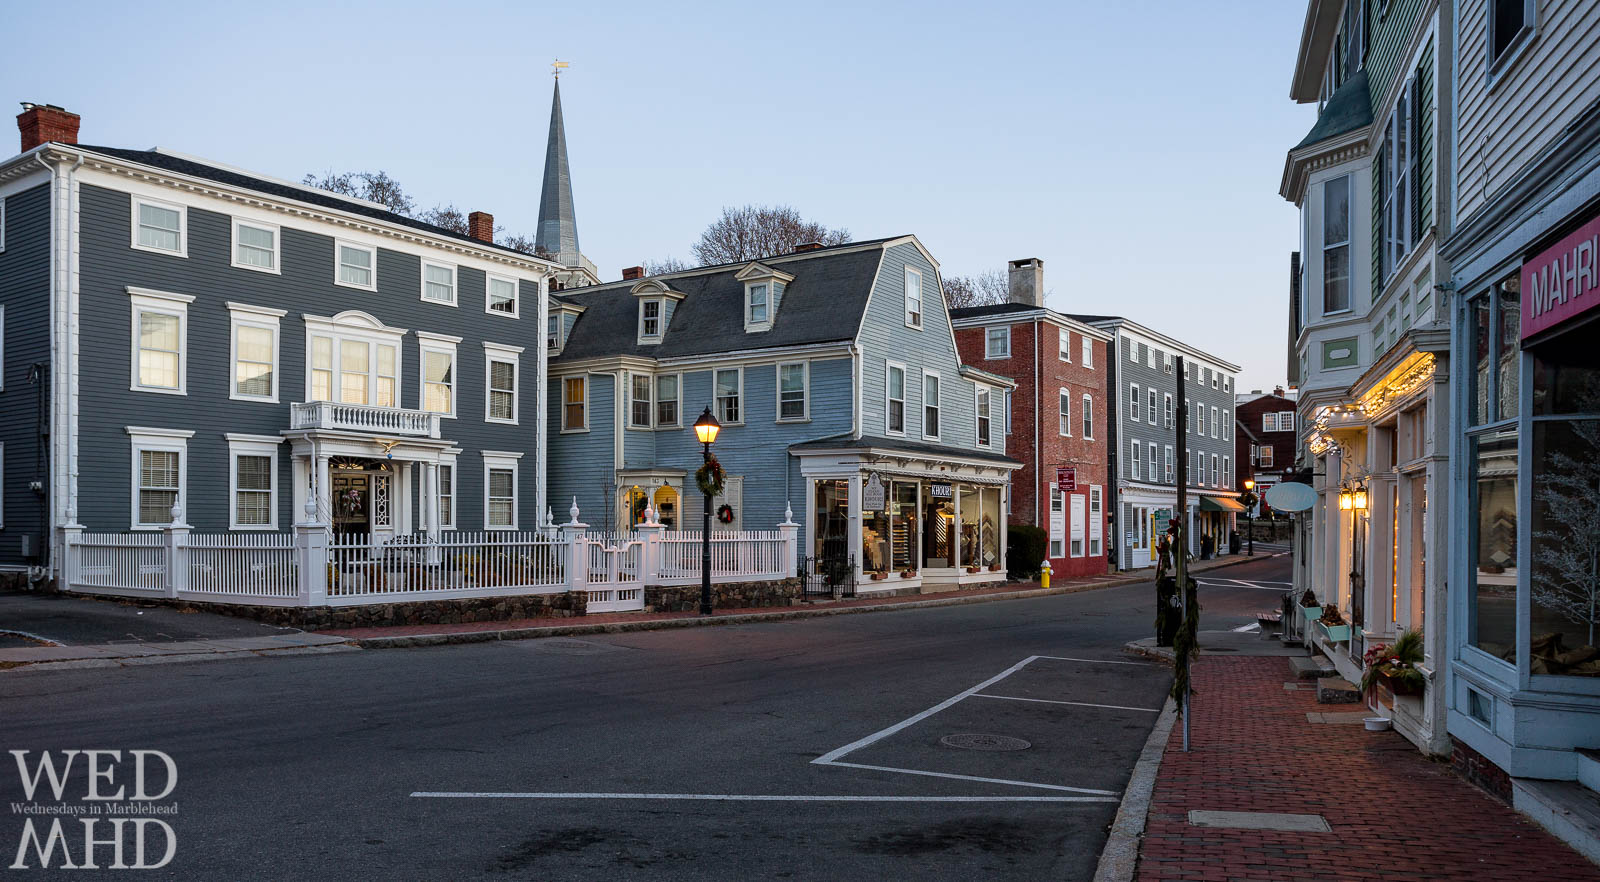 An early morning view of historic downtown Marblehead captures houses and shops with St. Michael's steeple rising above Washington Street